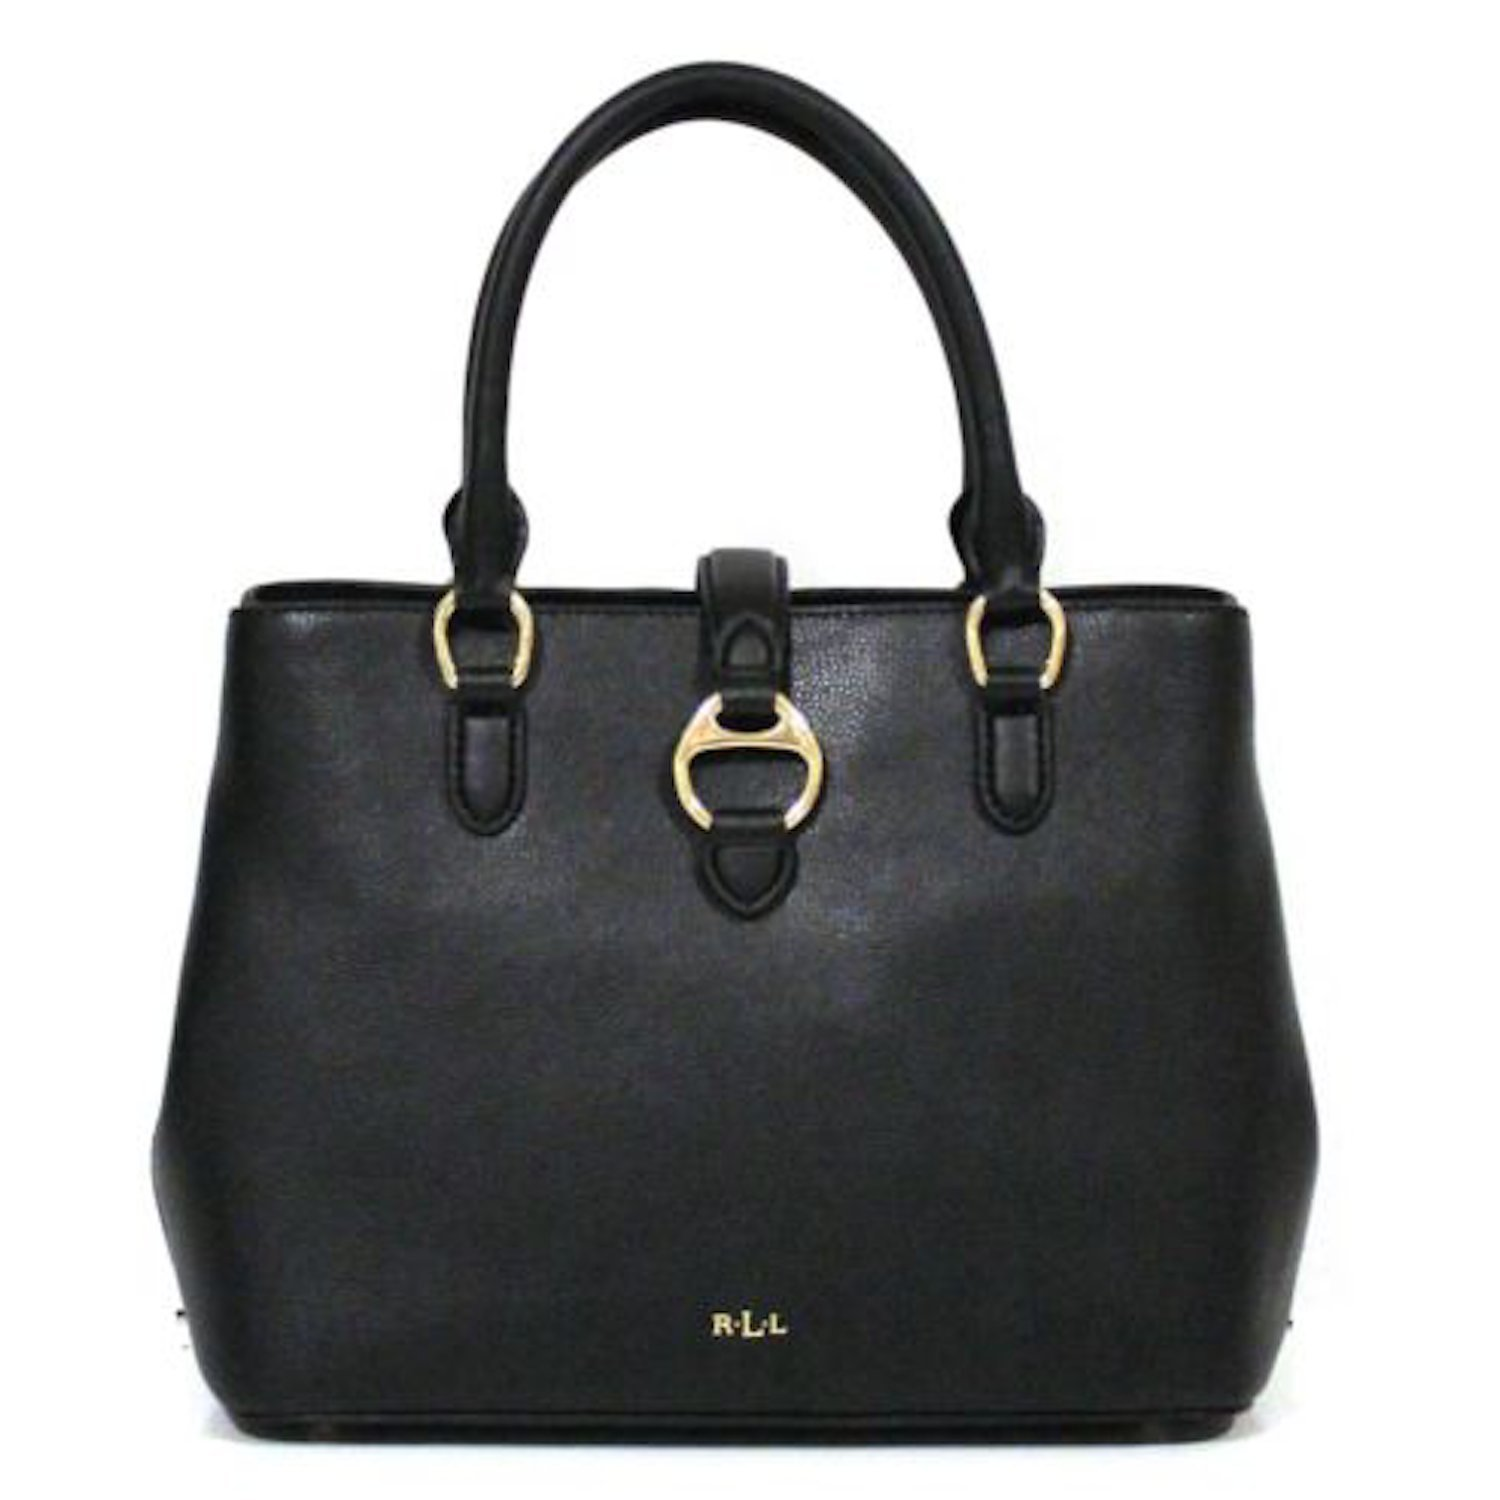 a2f521579e48 Amazon.com  Lauren Ralph Lauren Allenville Satchel Black  Shoes